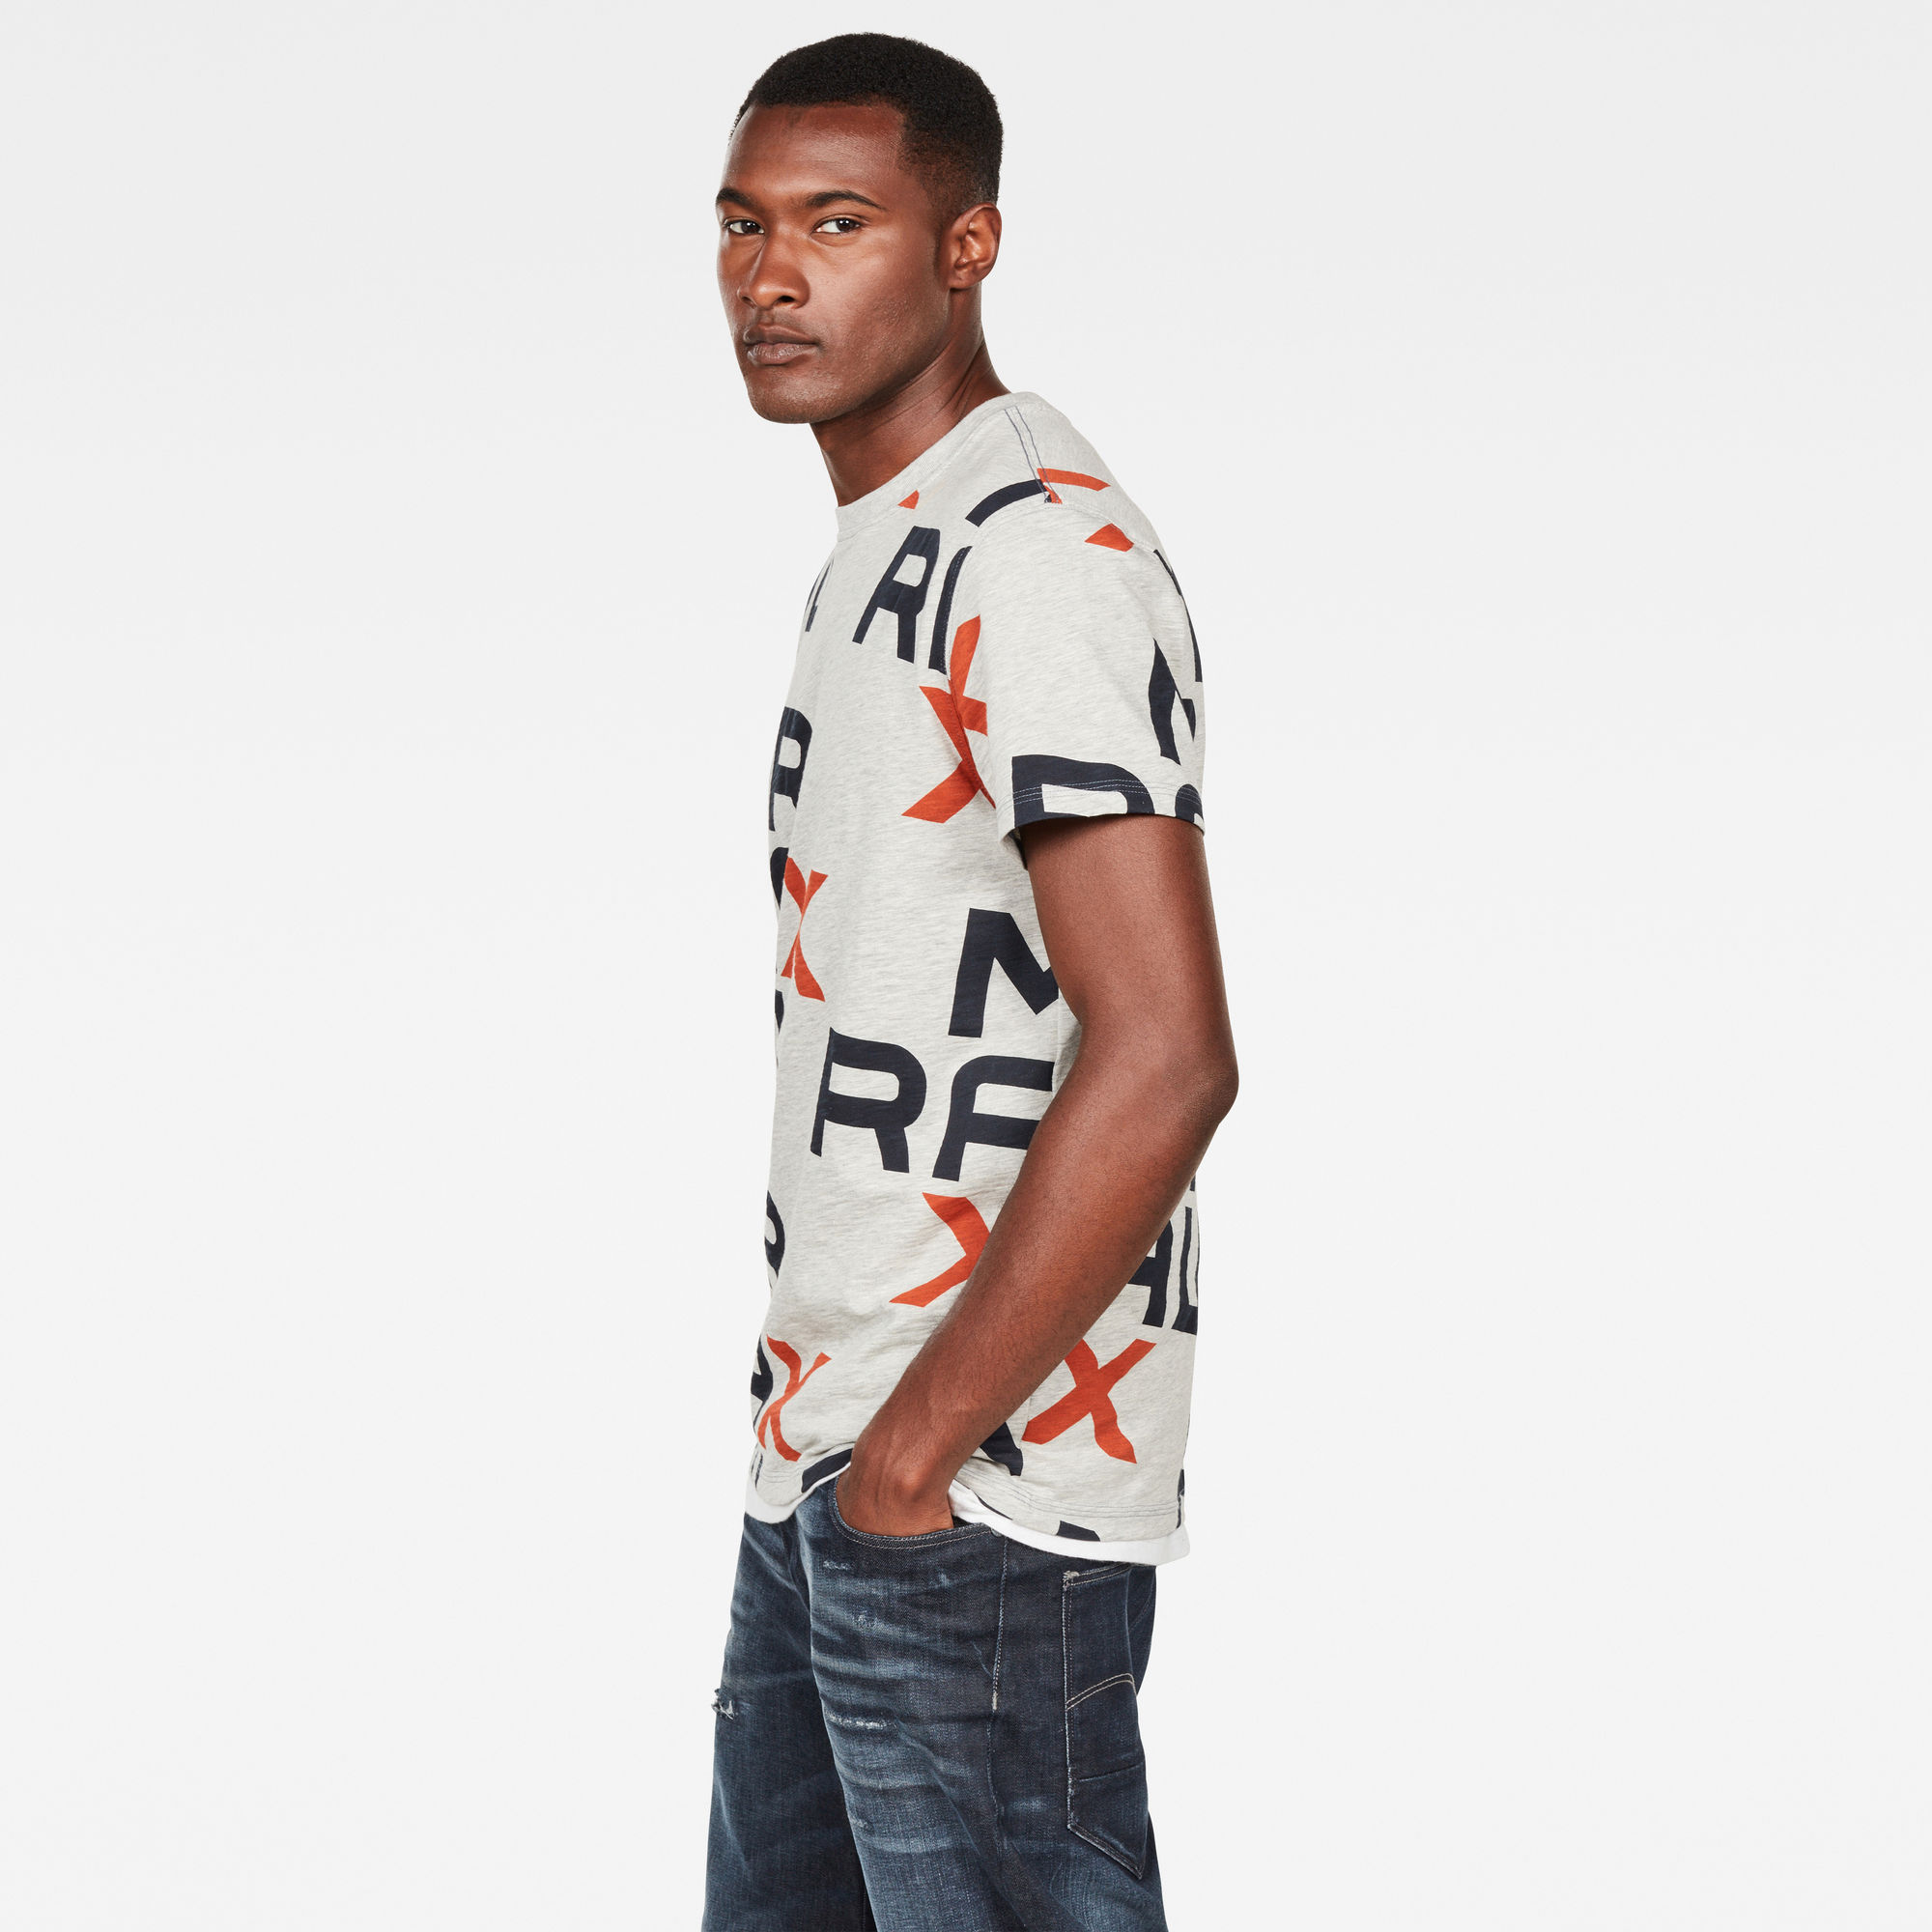 MAXRAW III Graphic T-Shirt